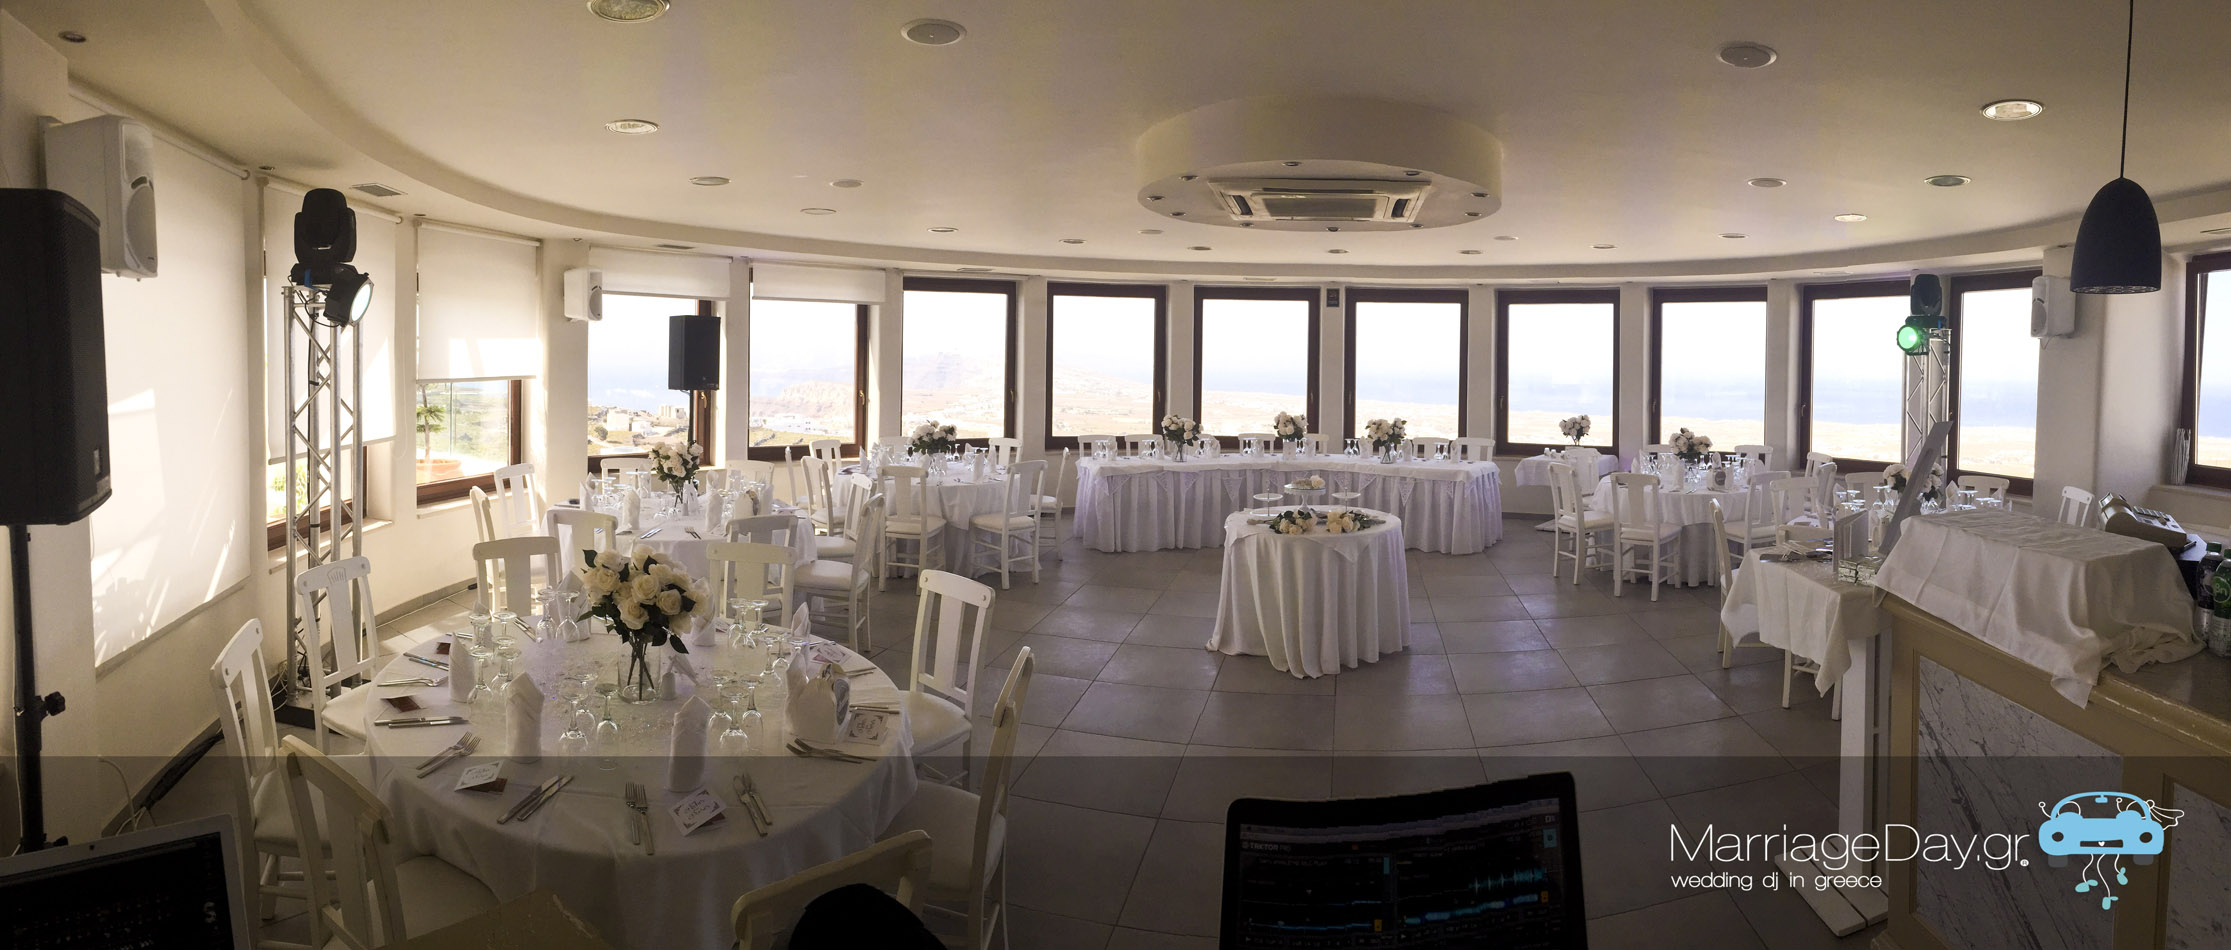 Marriageday.gr Santorini pyrgos dance floor lighting set up